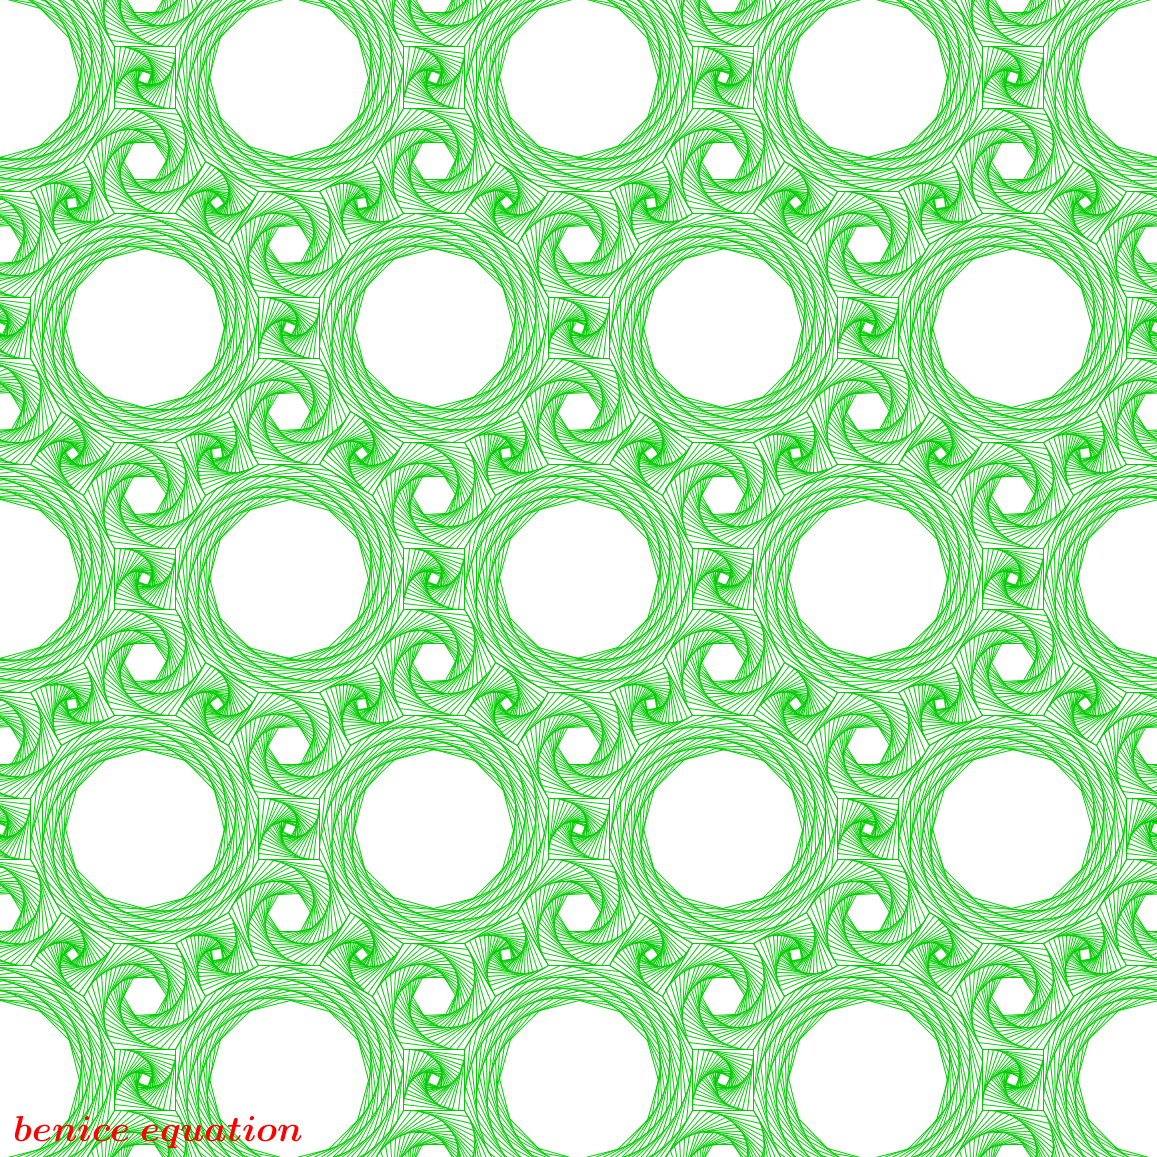 Fun math art (pictures) - benice equation: Tiling by Nested Polygons (2)